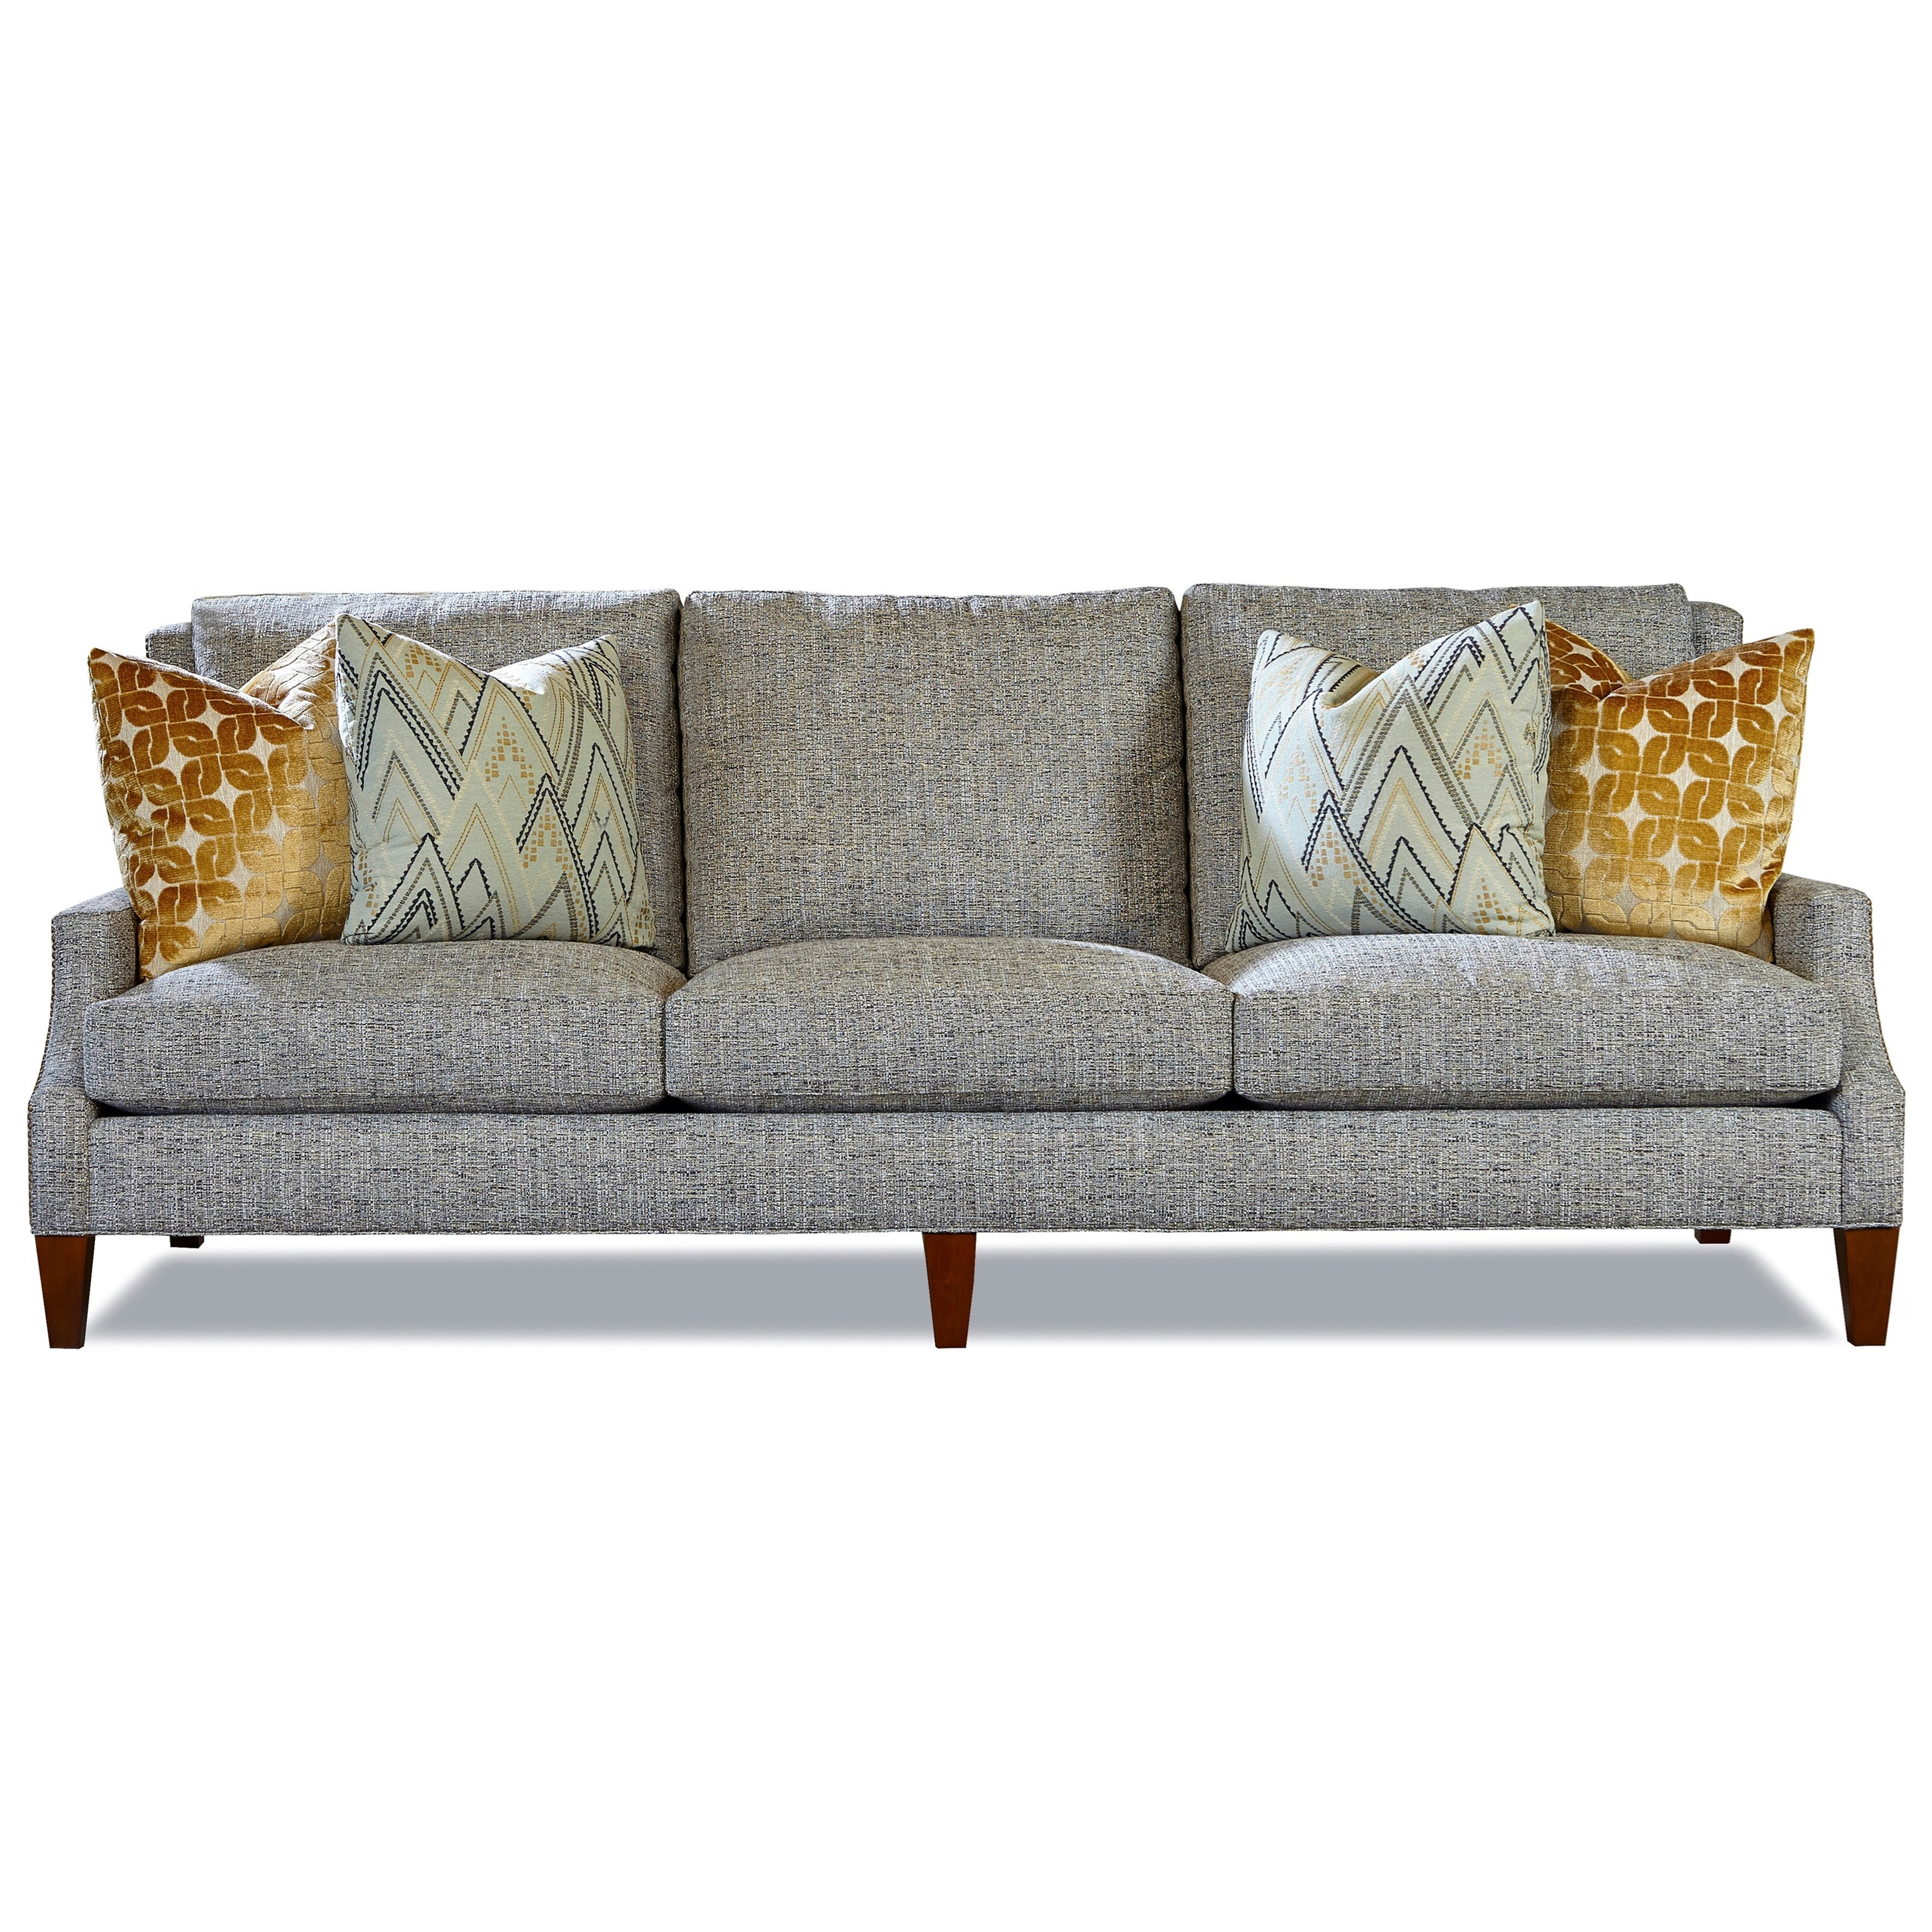 7281 Sofa by Geoffrey Alexander at Sprintz Furniture